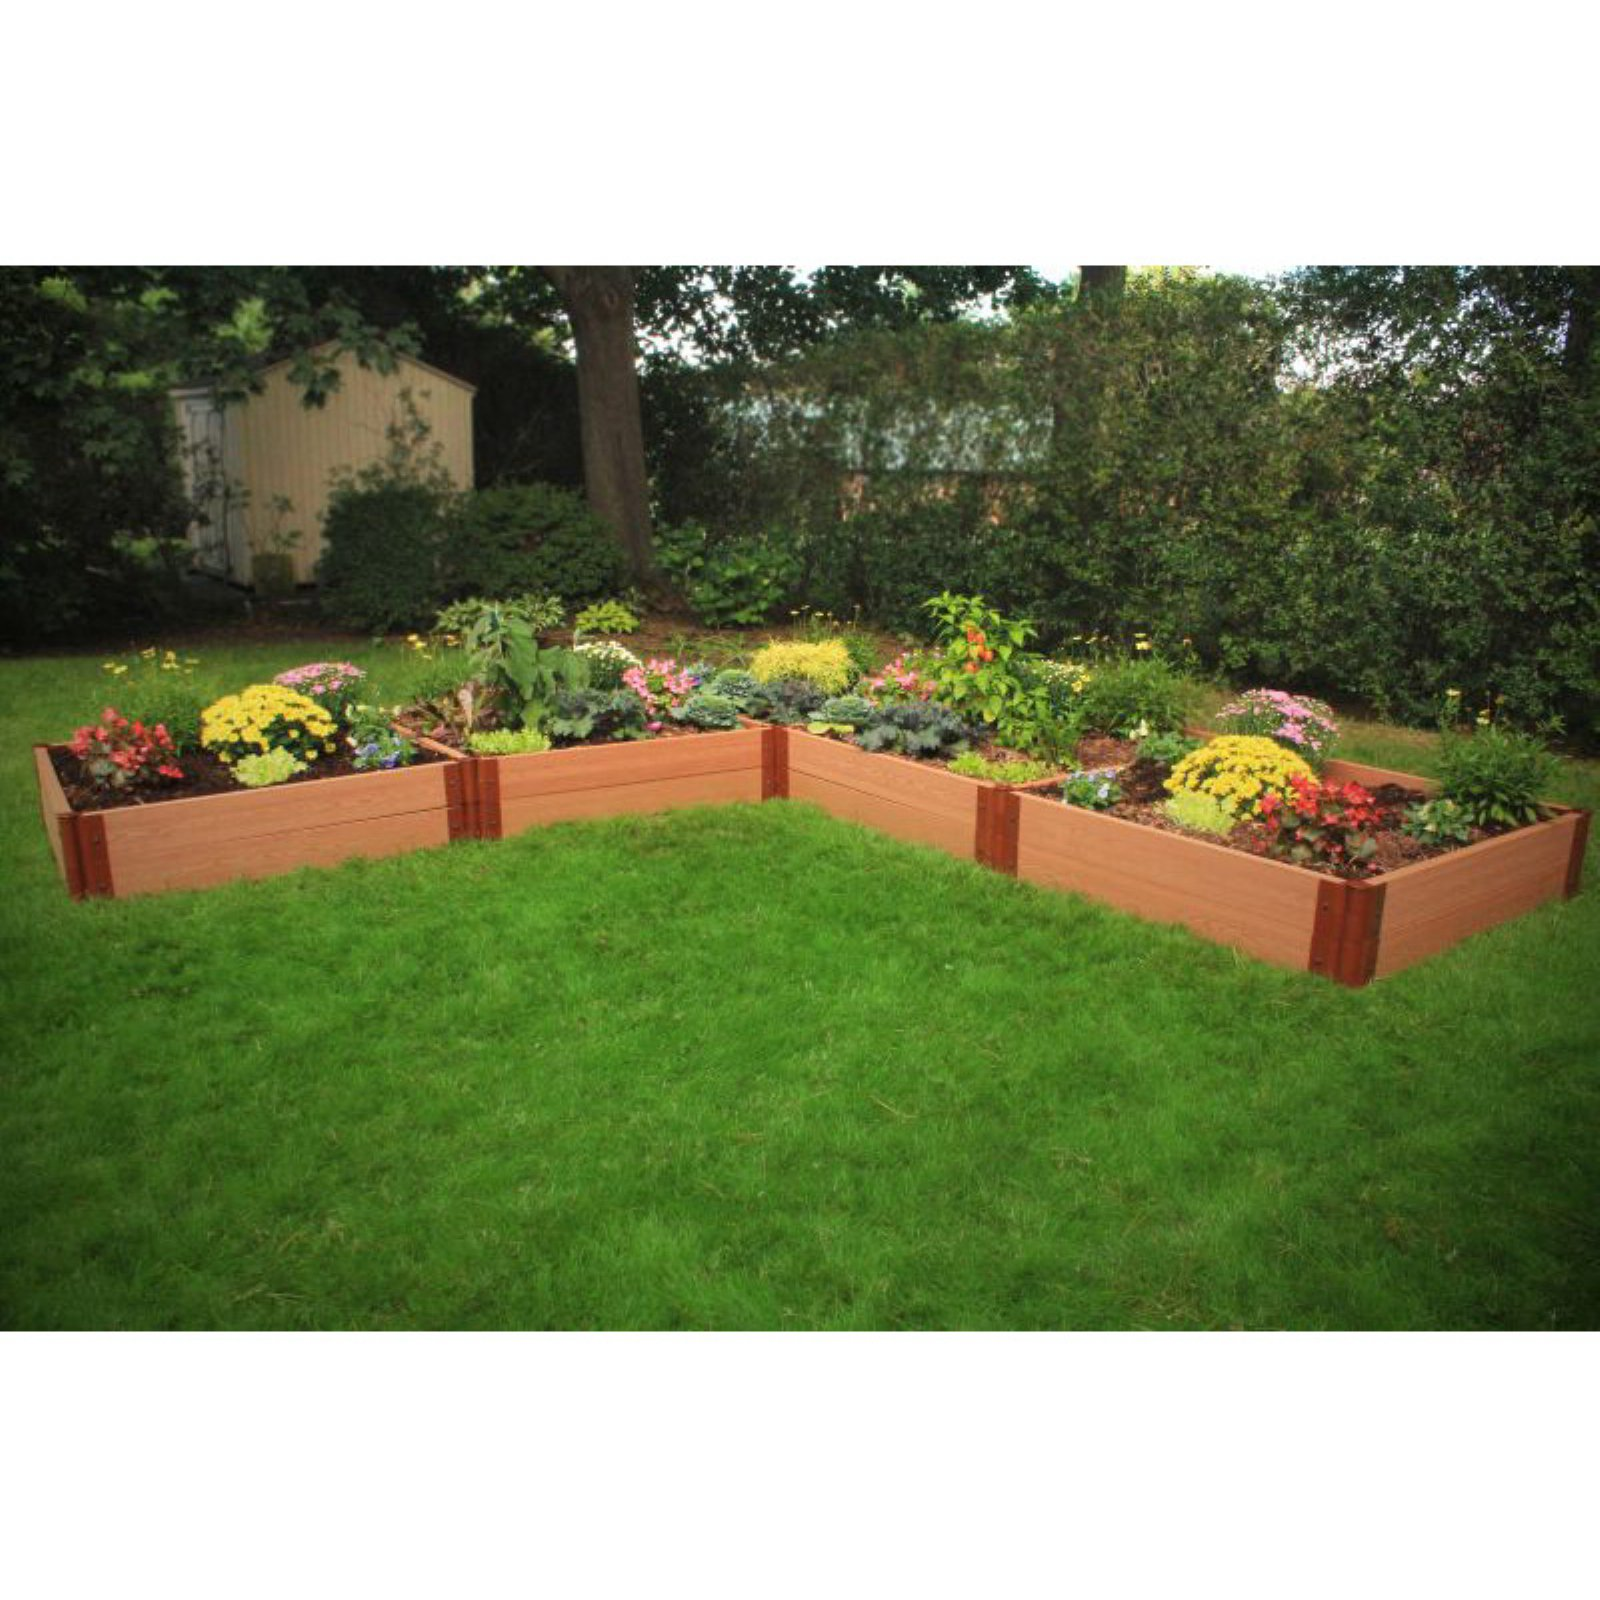 Frame It All 2-inch Series Composite L-Shaped Raised Garden Bed Kit - 12ft. x 12ft. x 11in.